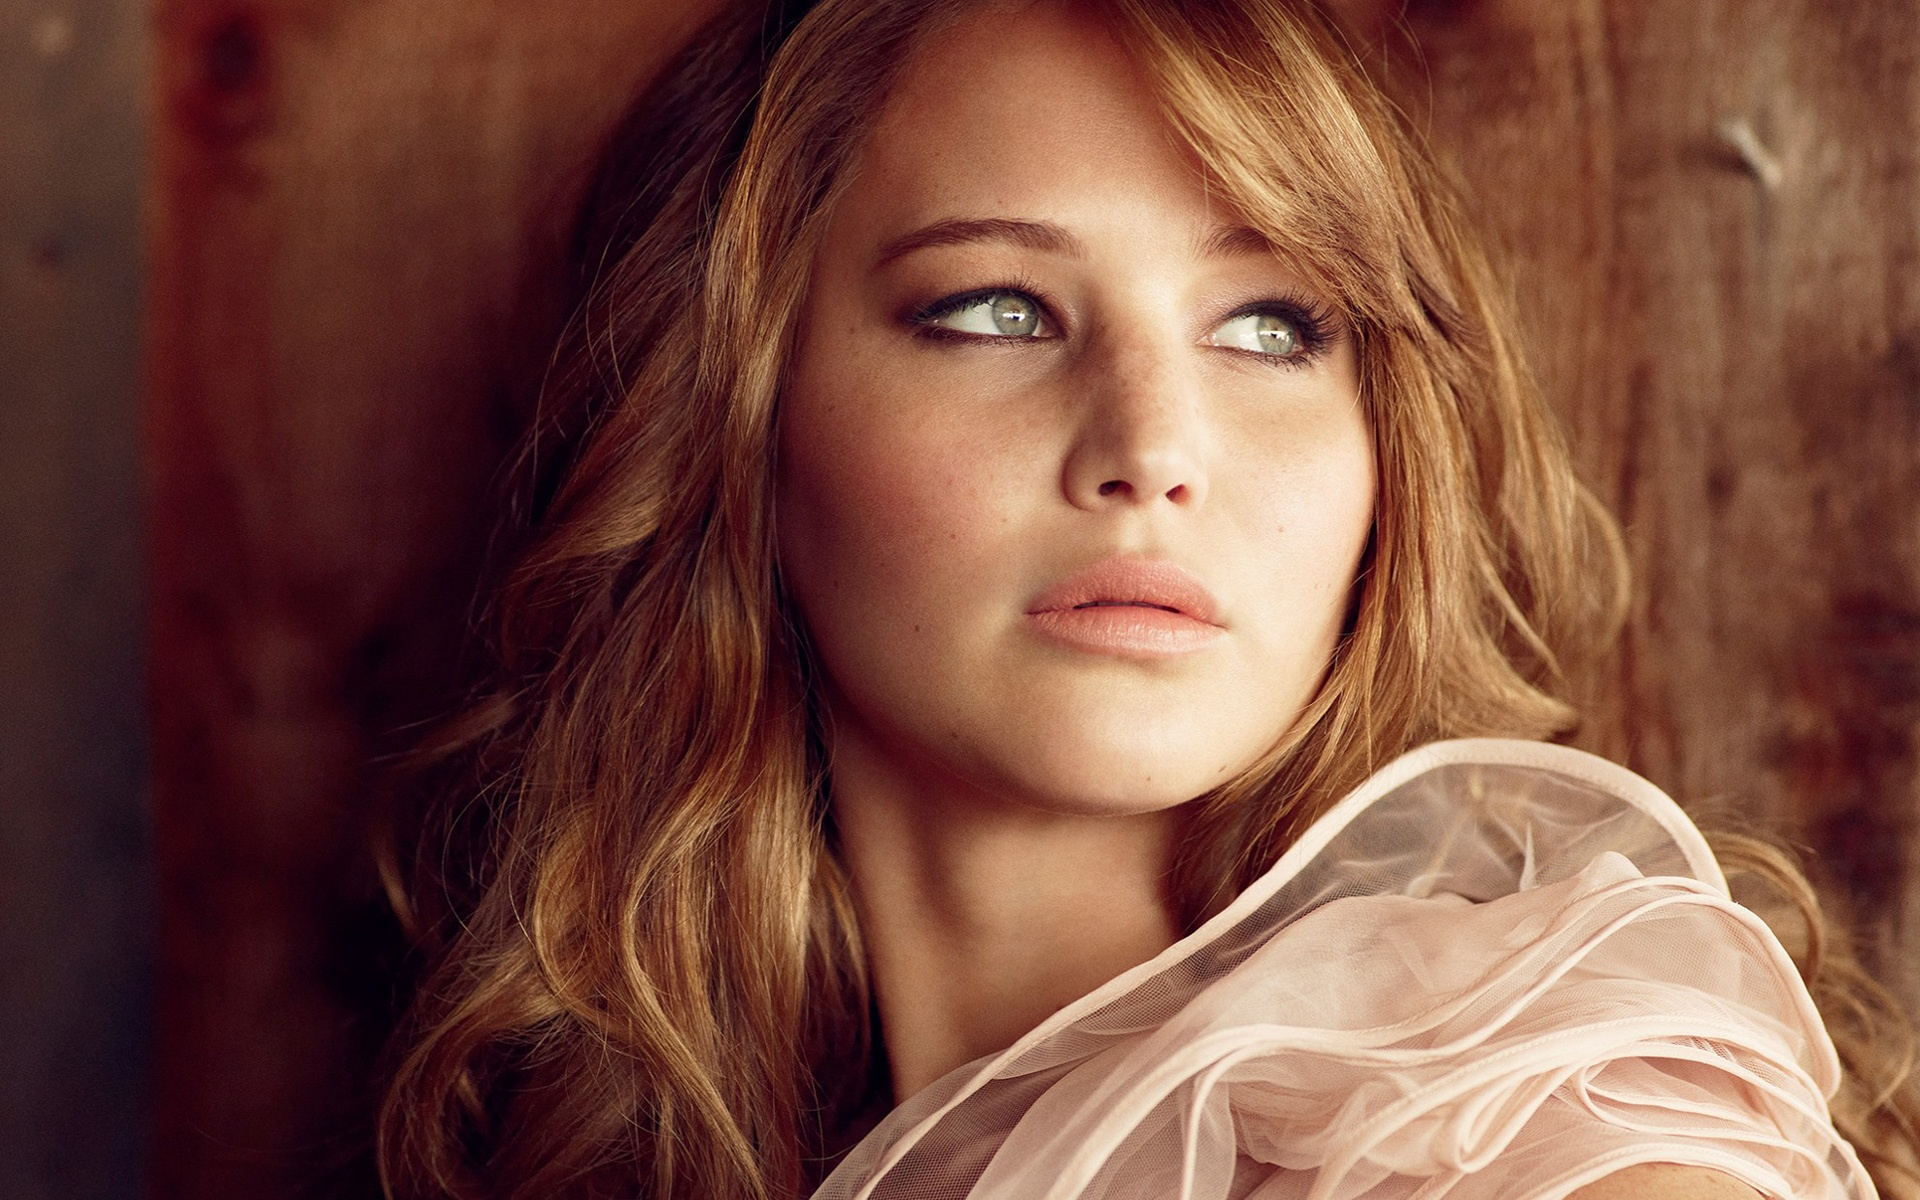 jennifer_lawrence_7-1920x1200